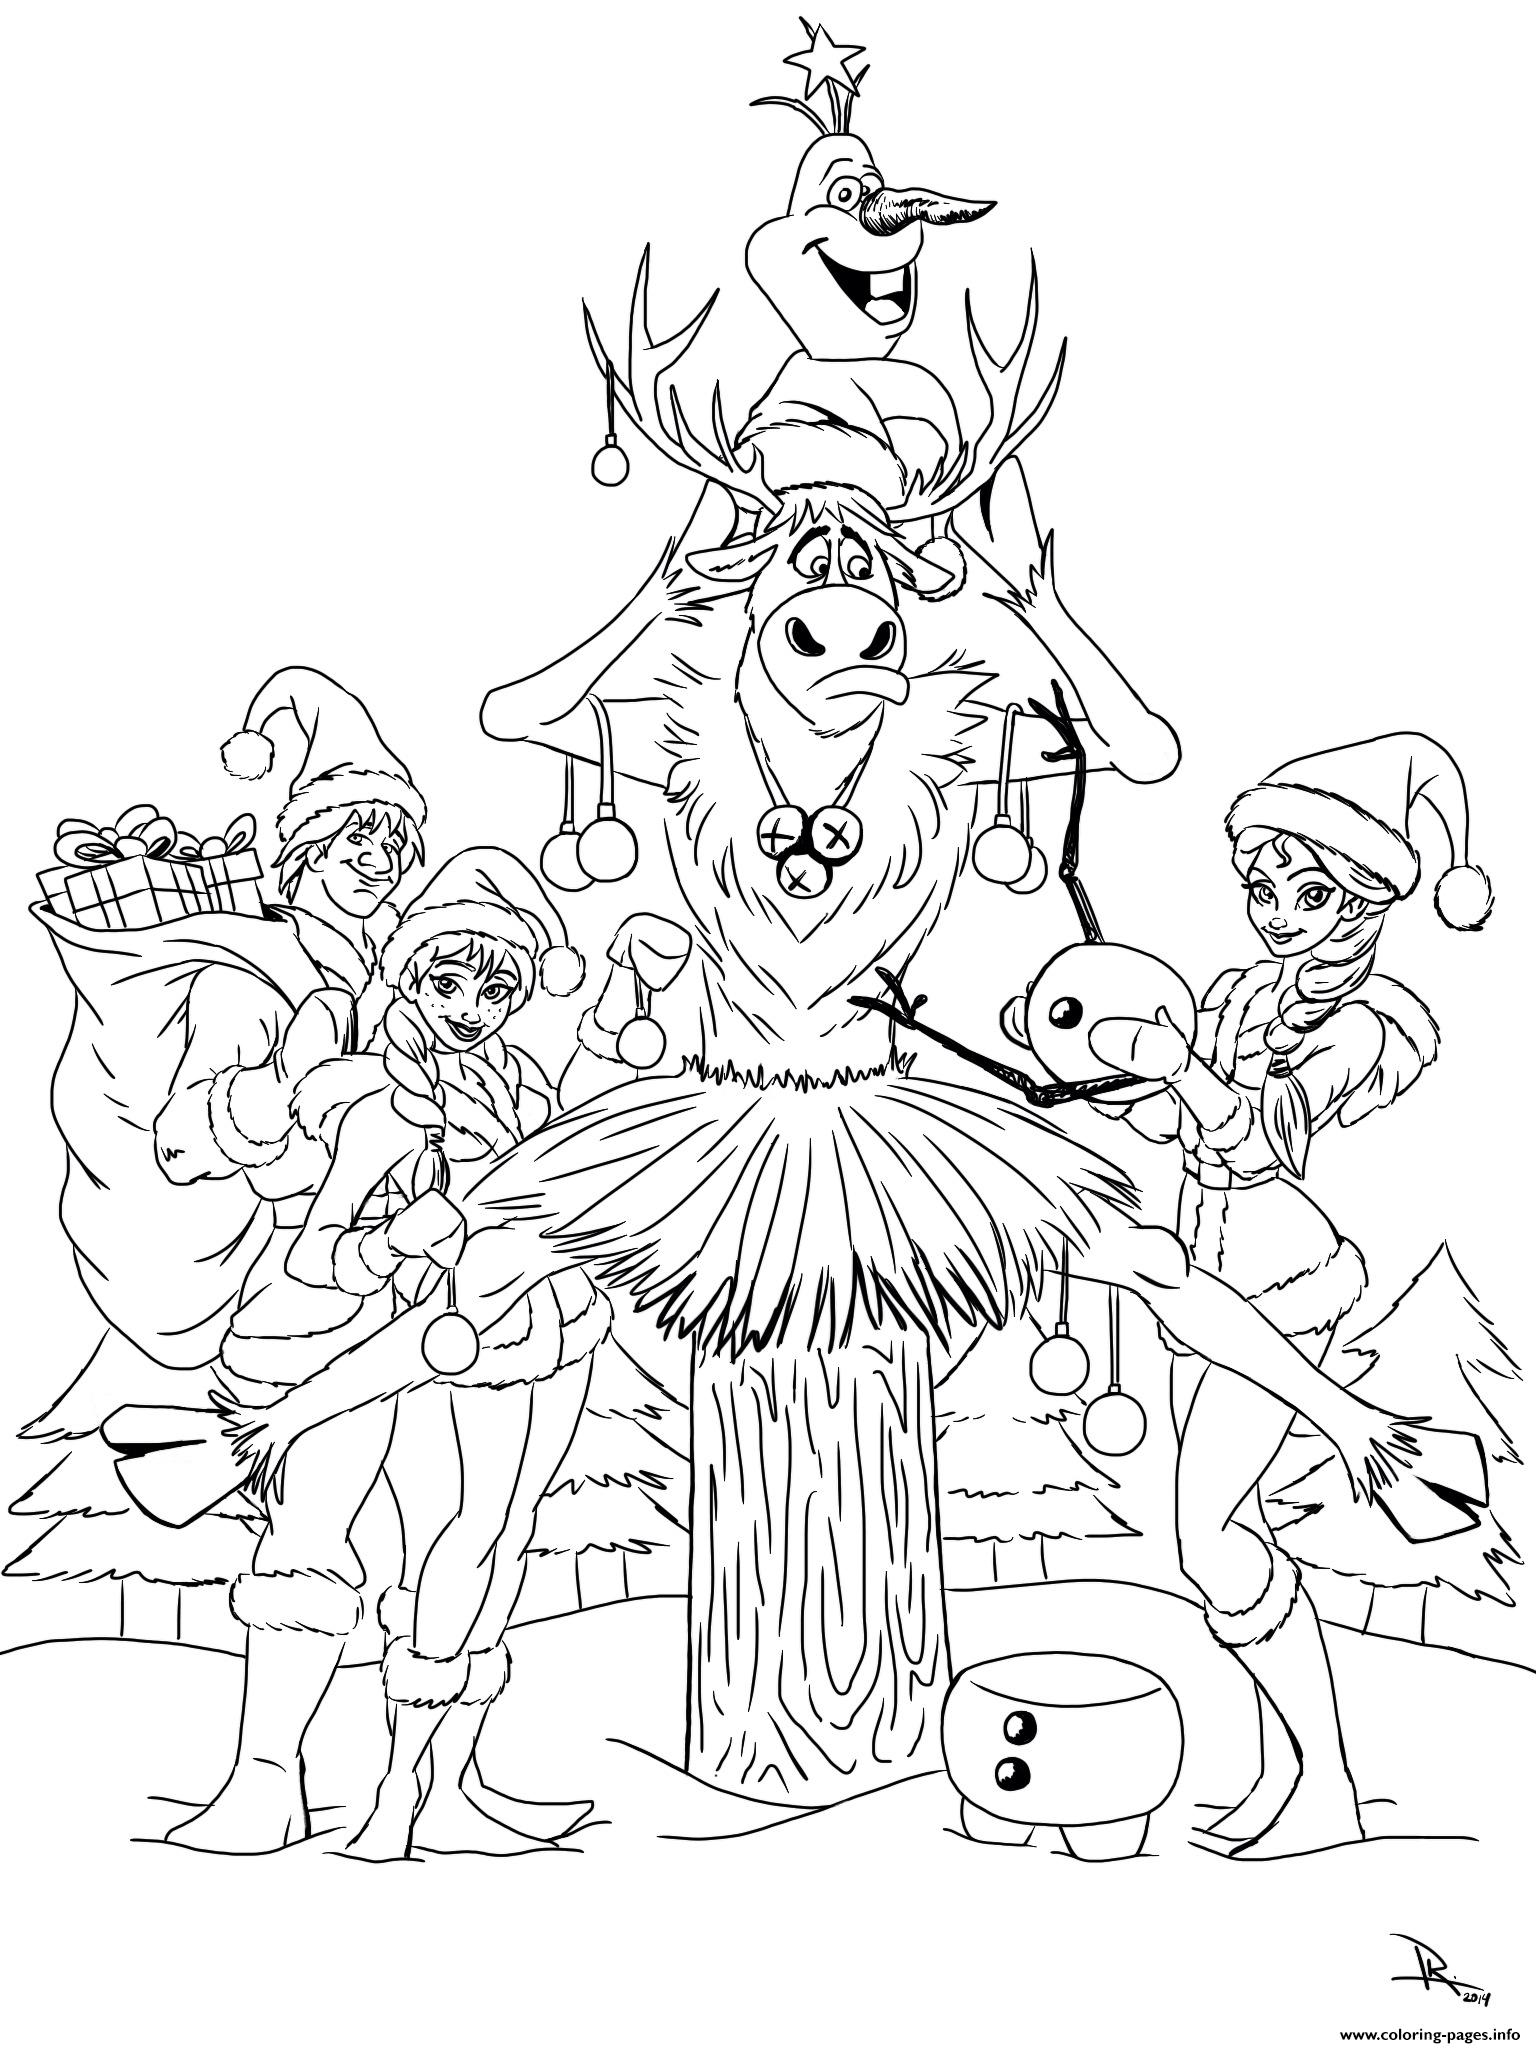 Frozen Christmas All Characters Coloring Pages Printable